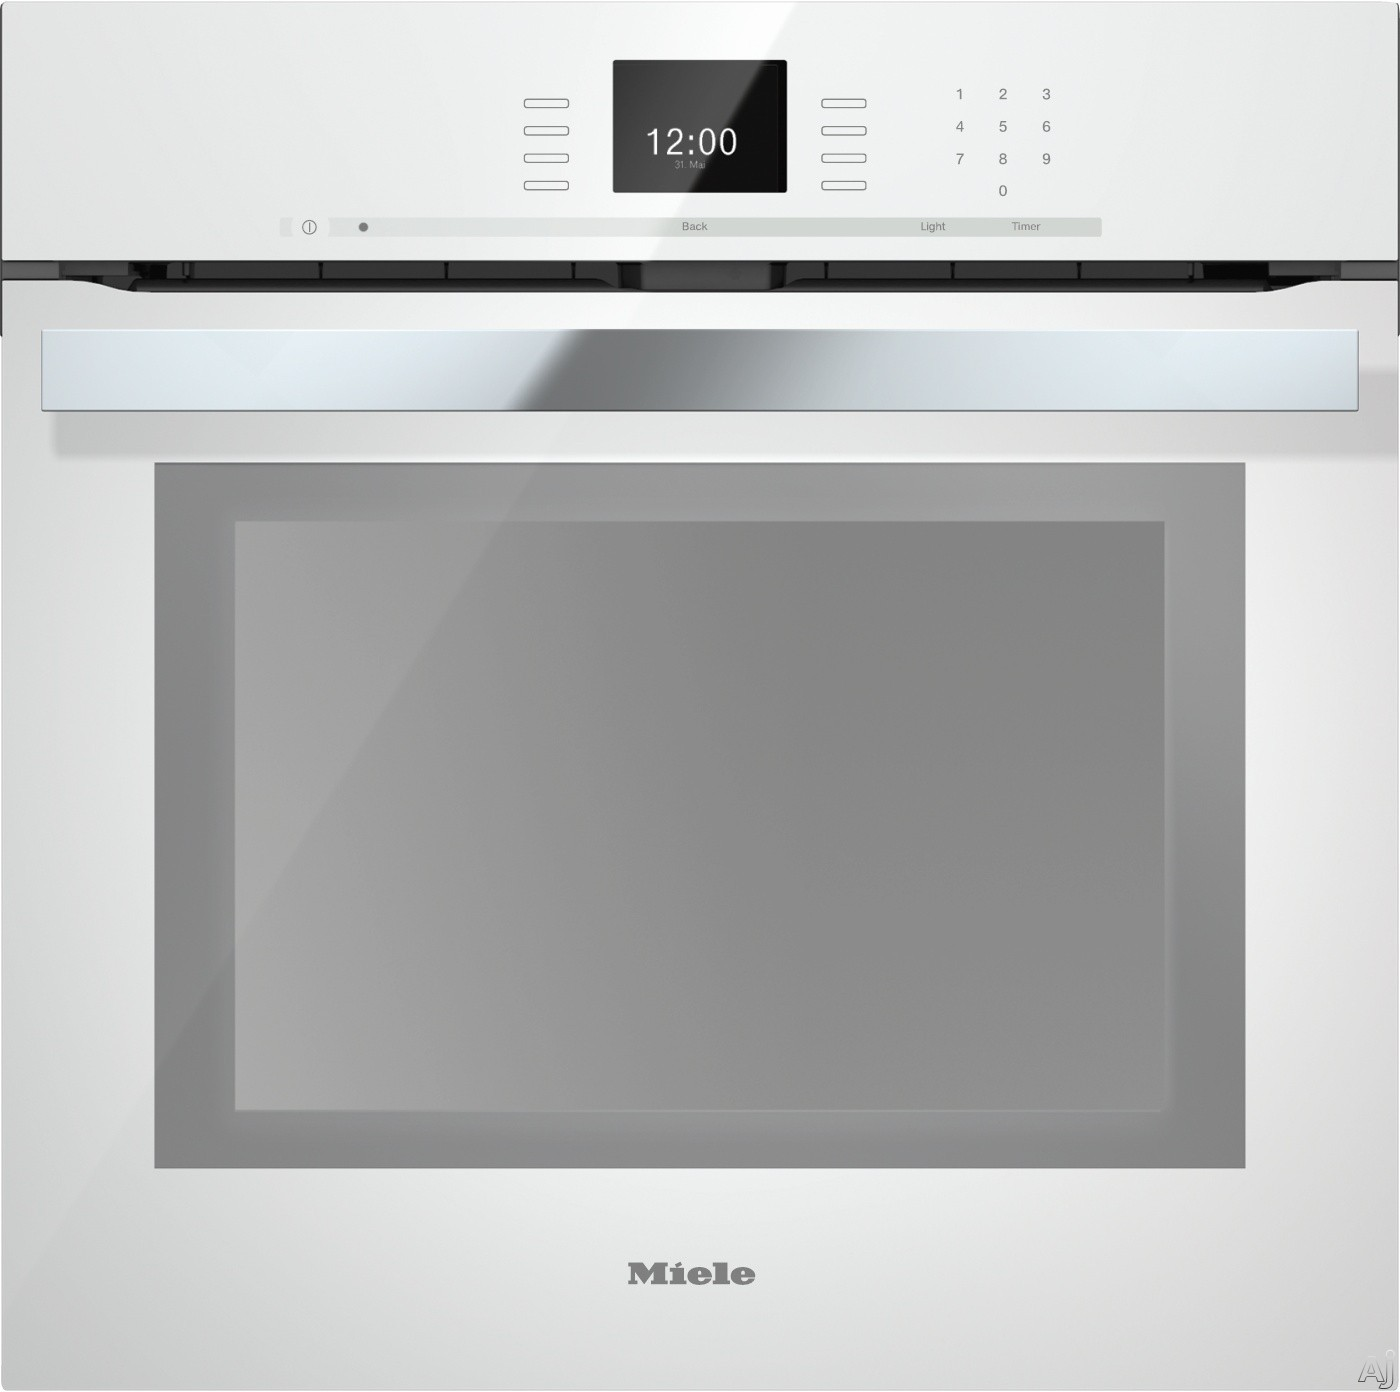 Miele PureLine SensorTronic Series H6660BPBRWS 24 Inch Single Electric Wall Oven with Convection Cooking, Self Cleaning Mode, SensorTronic Controls, MasterChef Programs, Temperature Probe, PerfectClea